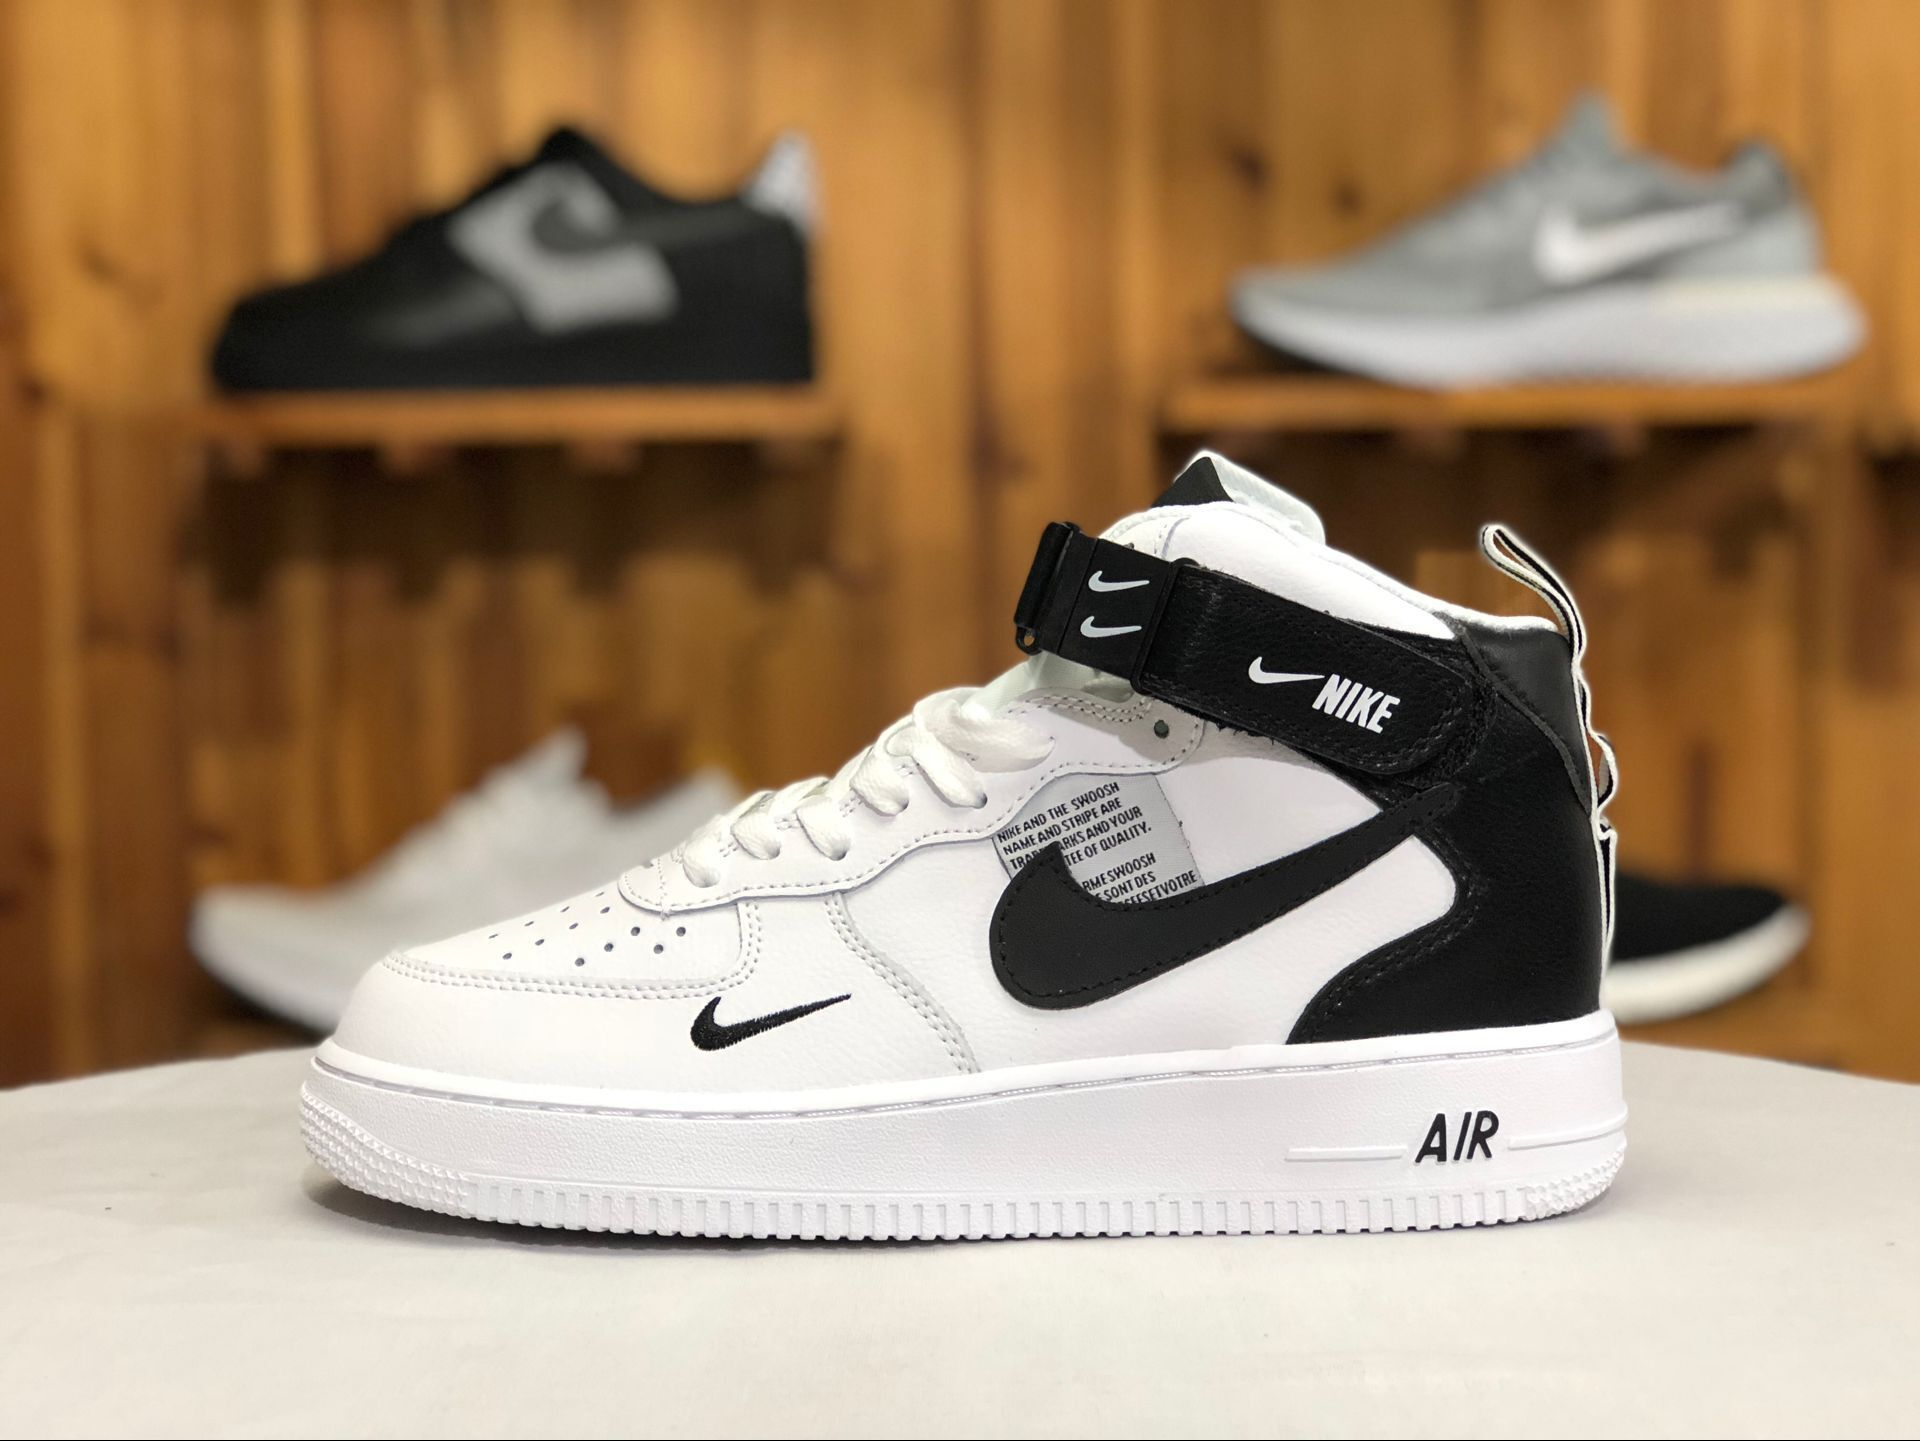 sports shoes a99db 3c3df Nike Air Force 1 High White Black AJ7747-100 To Buy